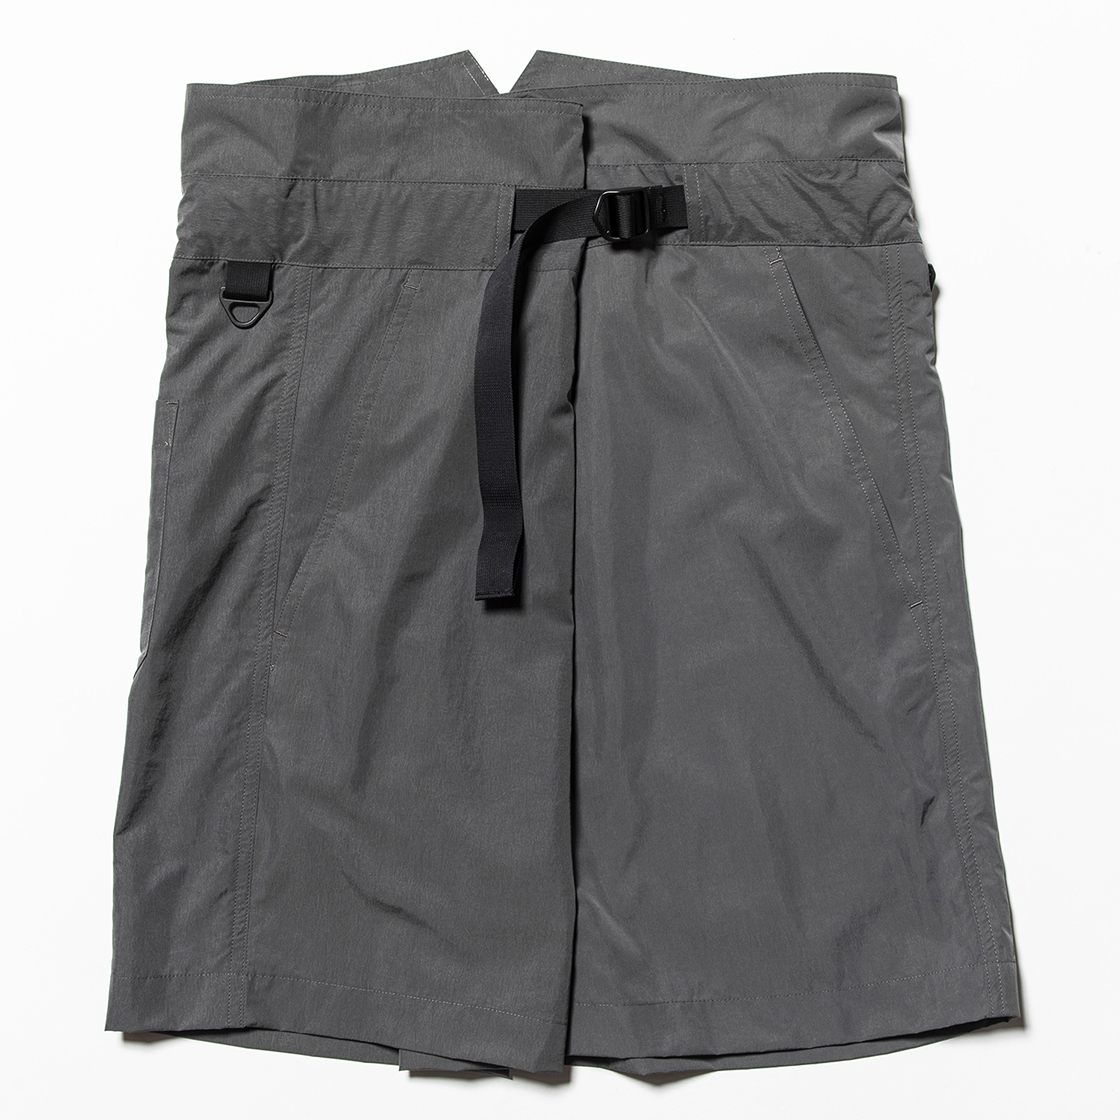 Nylon Wrap Board Shorts Charcoal